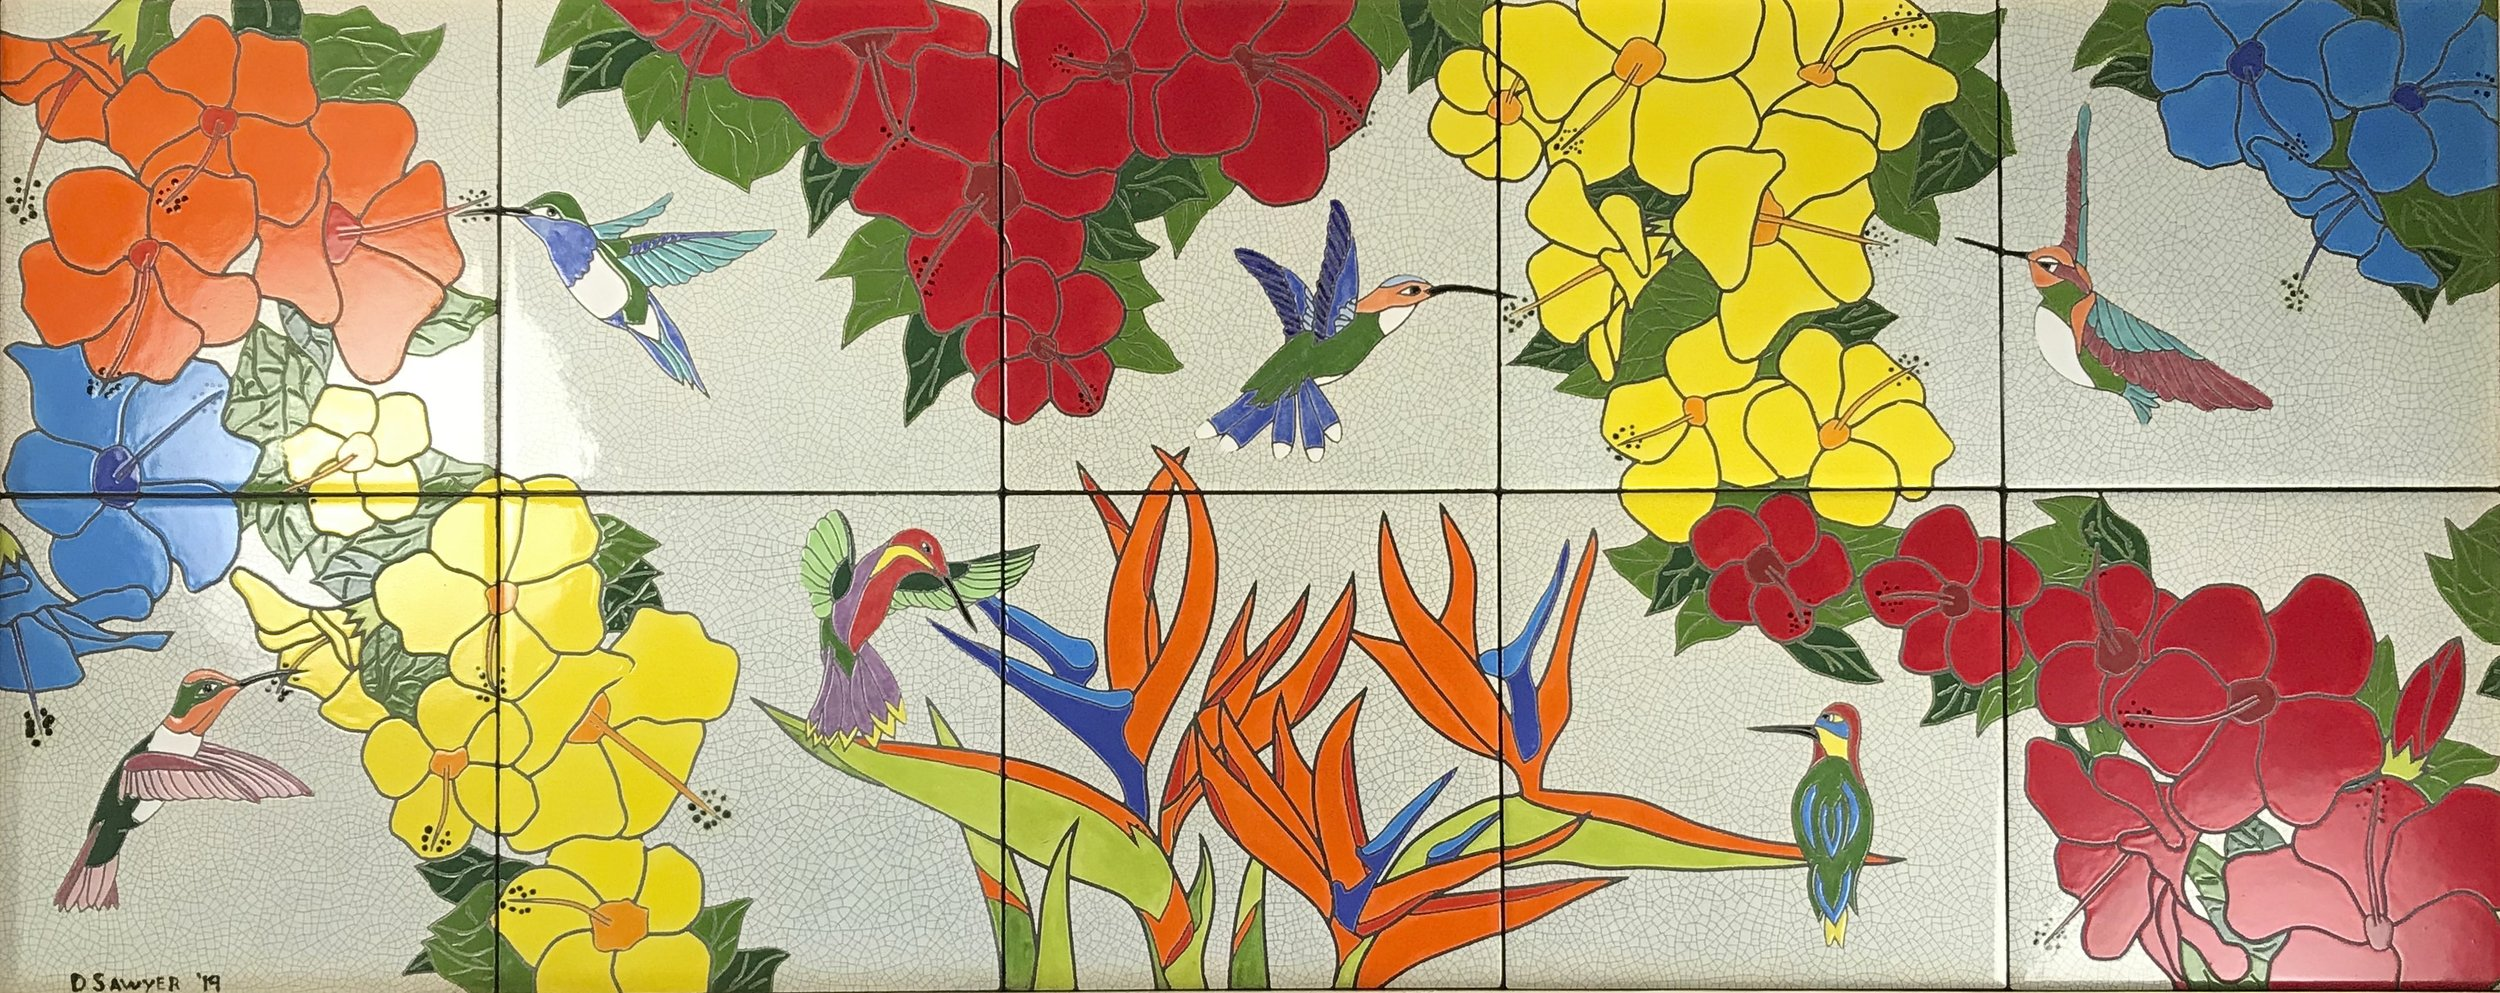 """Floribbean Afternoon - 16"""" x 40"""" commissioned art tile mural"""